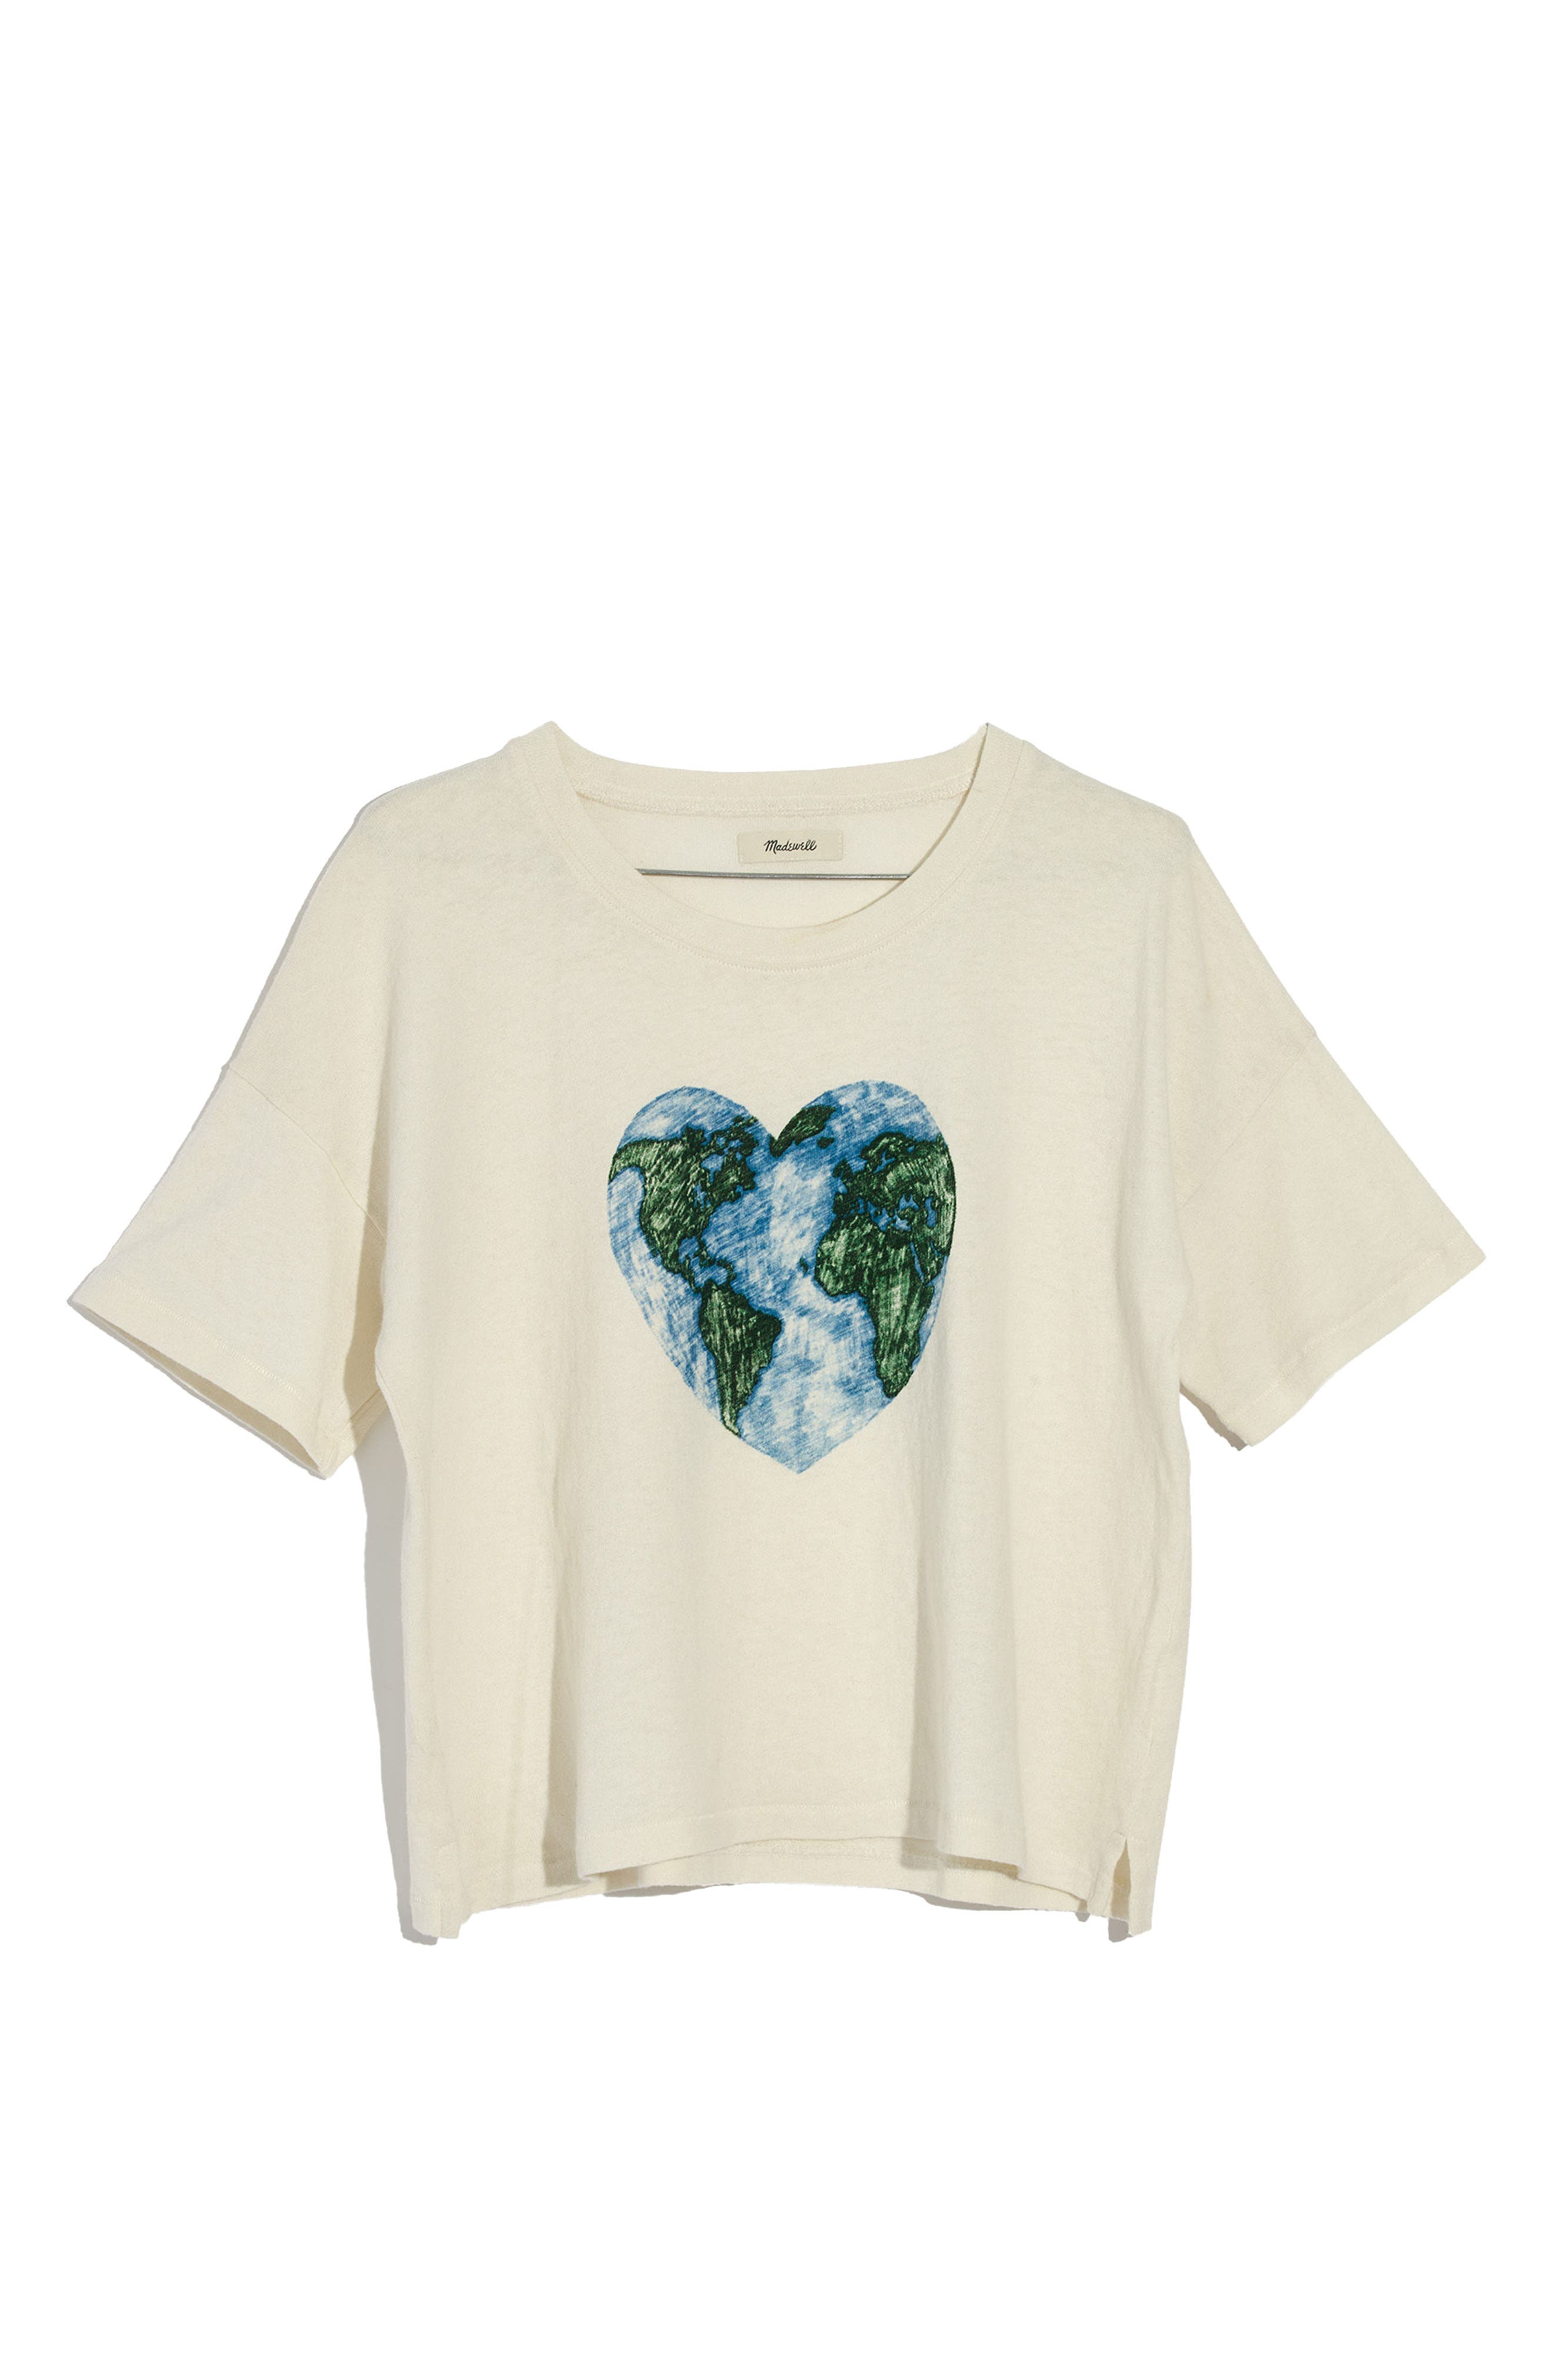 Alternate Image 3  - Madewell x Surfrider Foundation Mother Earth Tee